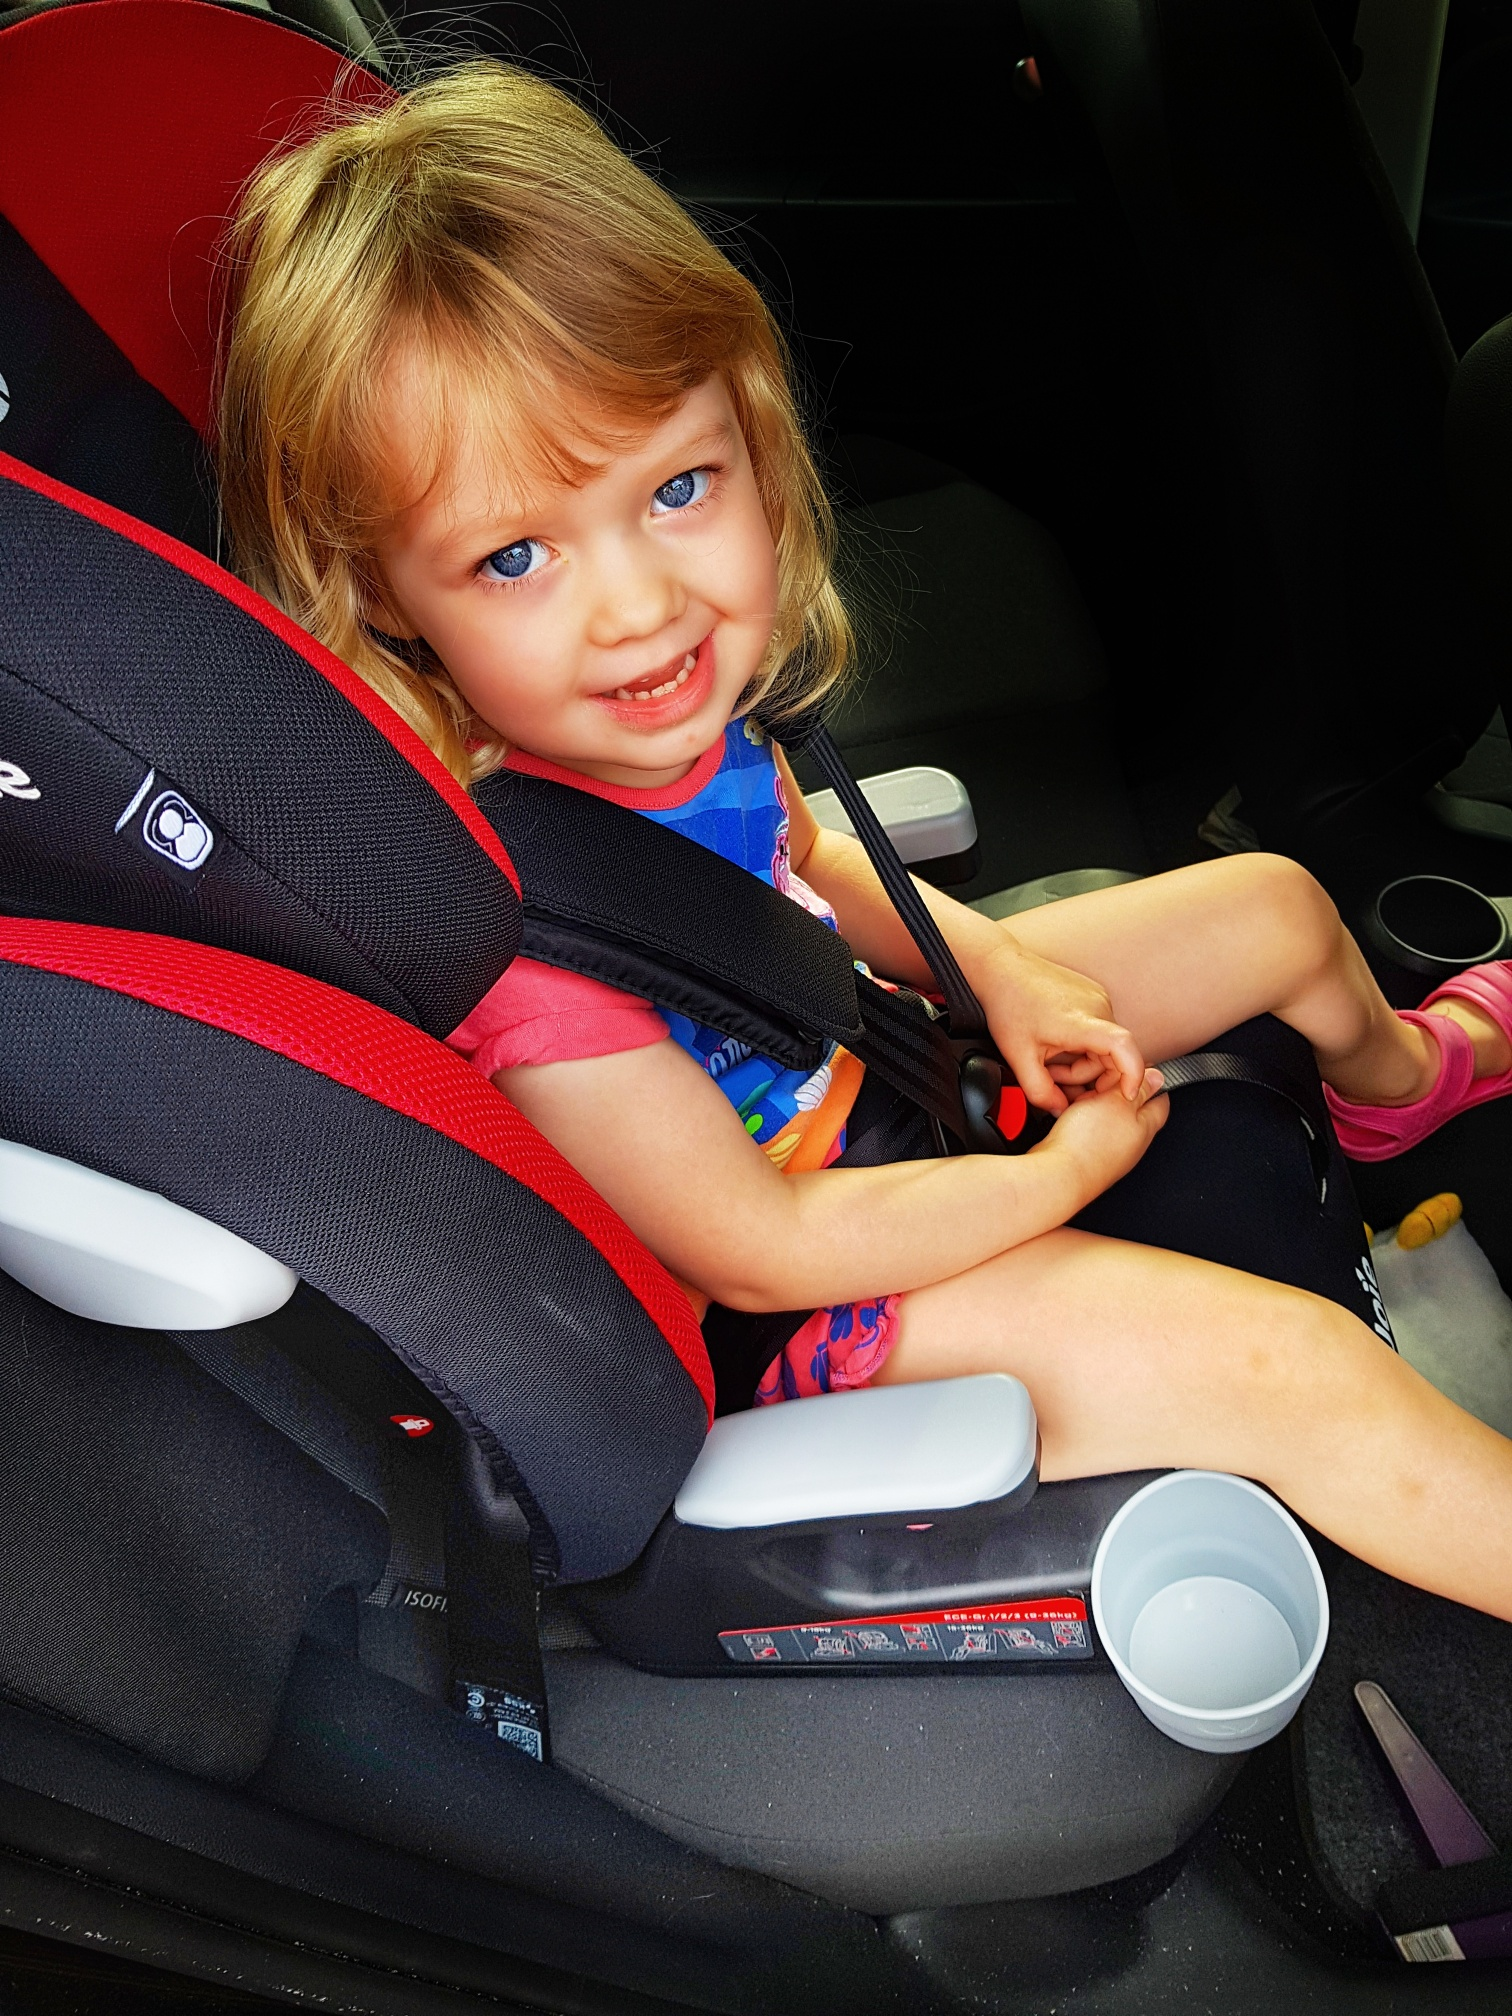 2a34cc1aa3fe Joie Elevate Group 1/2/3 Car Seat Review - Sophie's Nursery